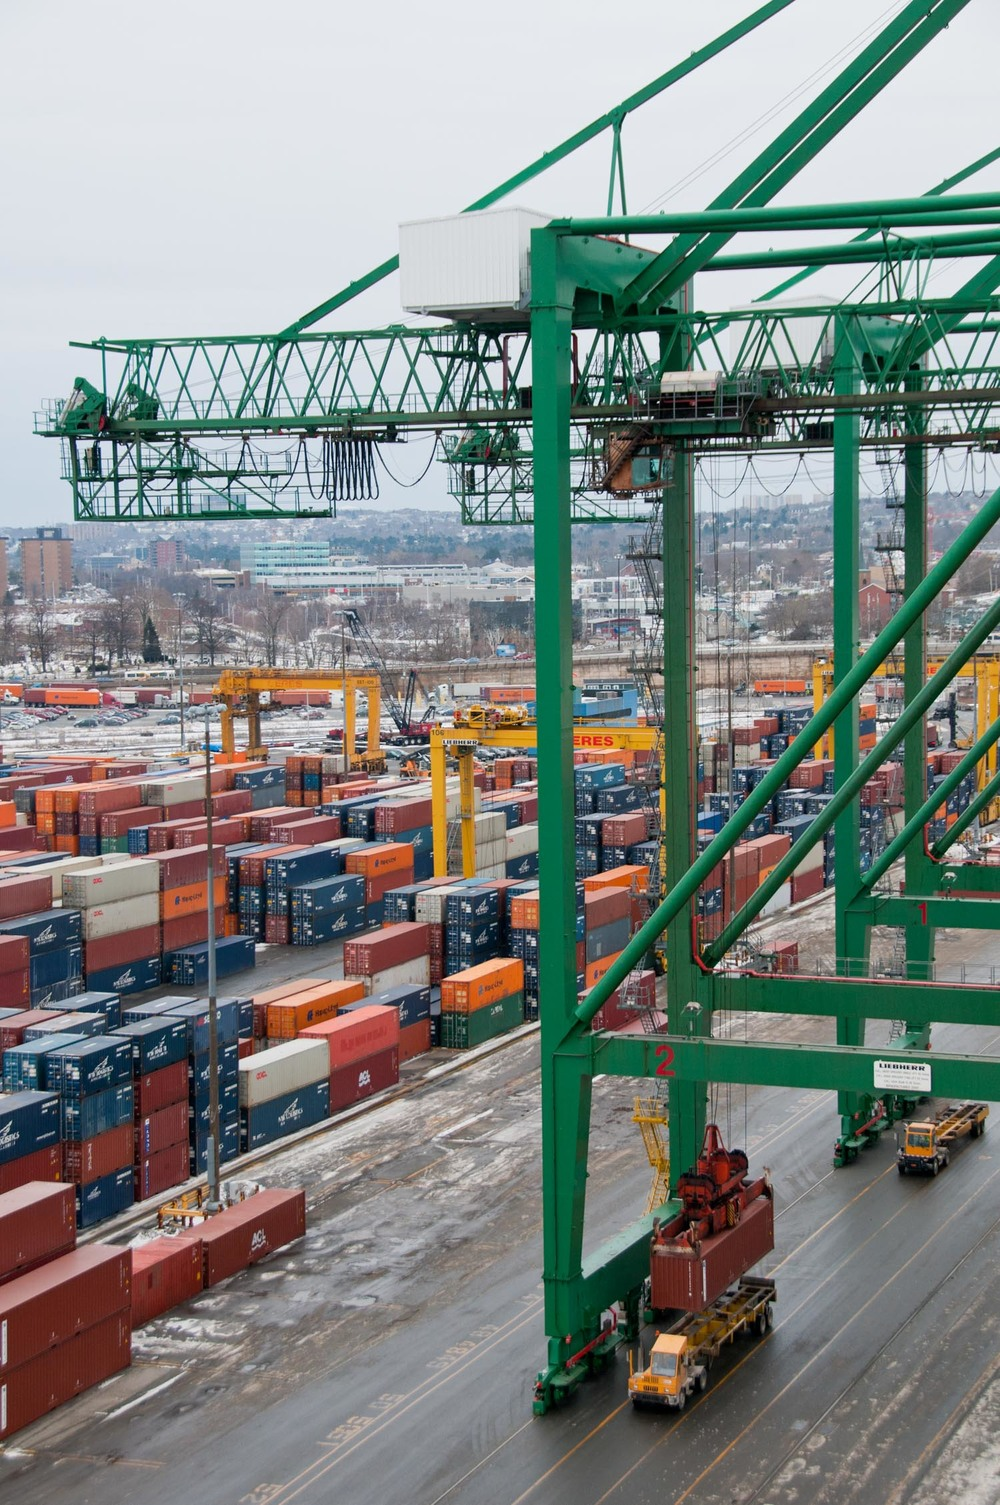 amfraser-Bloomberg News-Port of Halifax-Fairview Cove Container Terminal-Ceres-Halifax NS-7804-photo by Aaron McKenzie Fraser-www.amfraser.com-.jpg